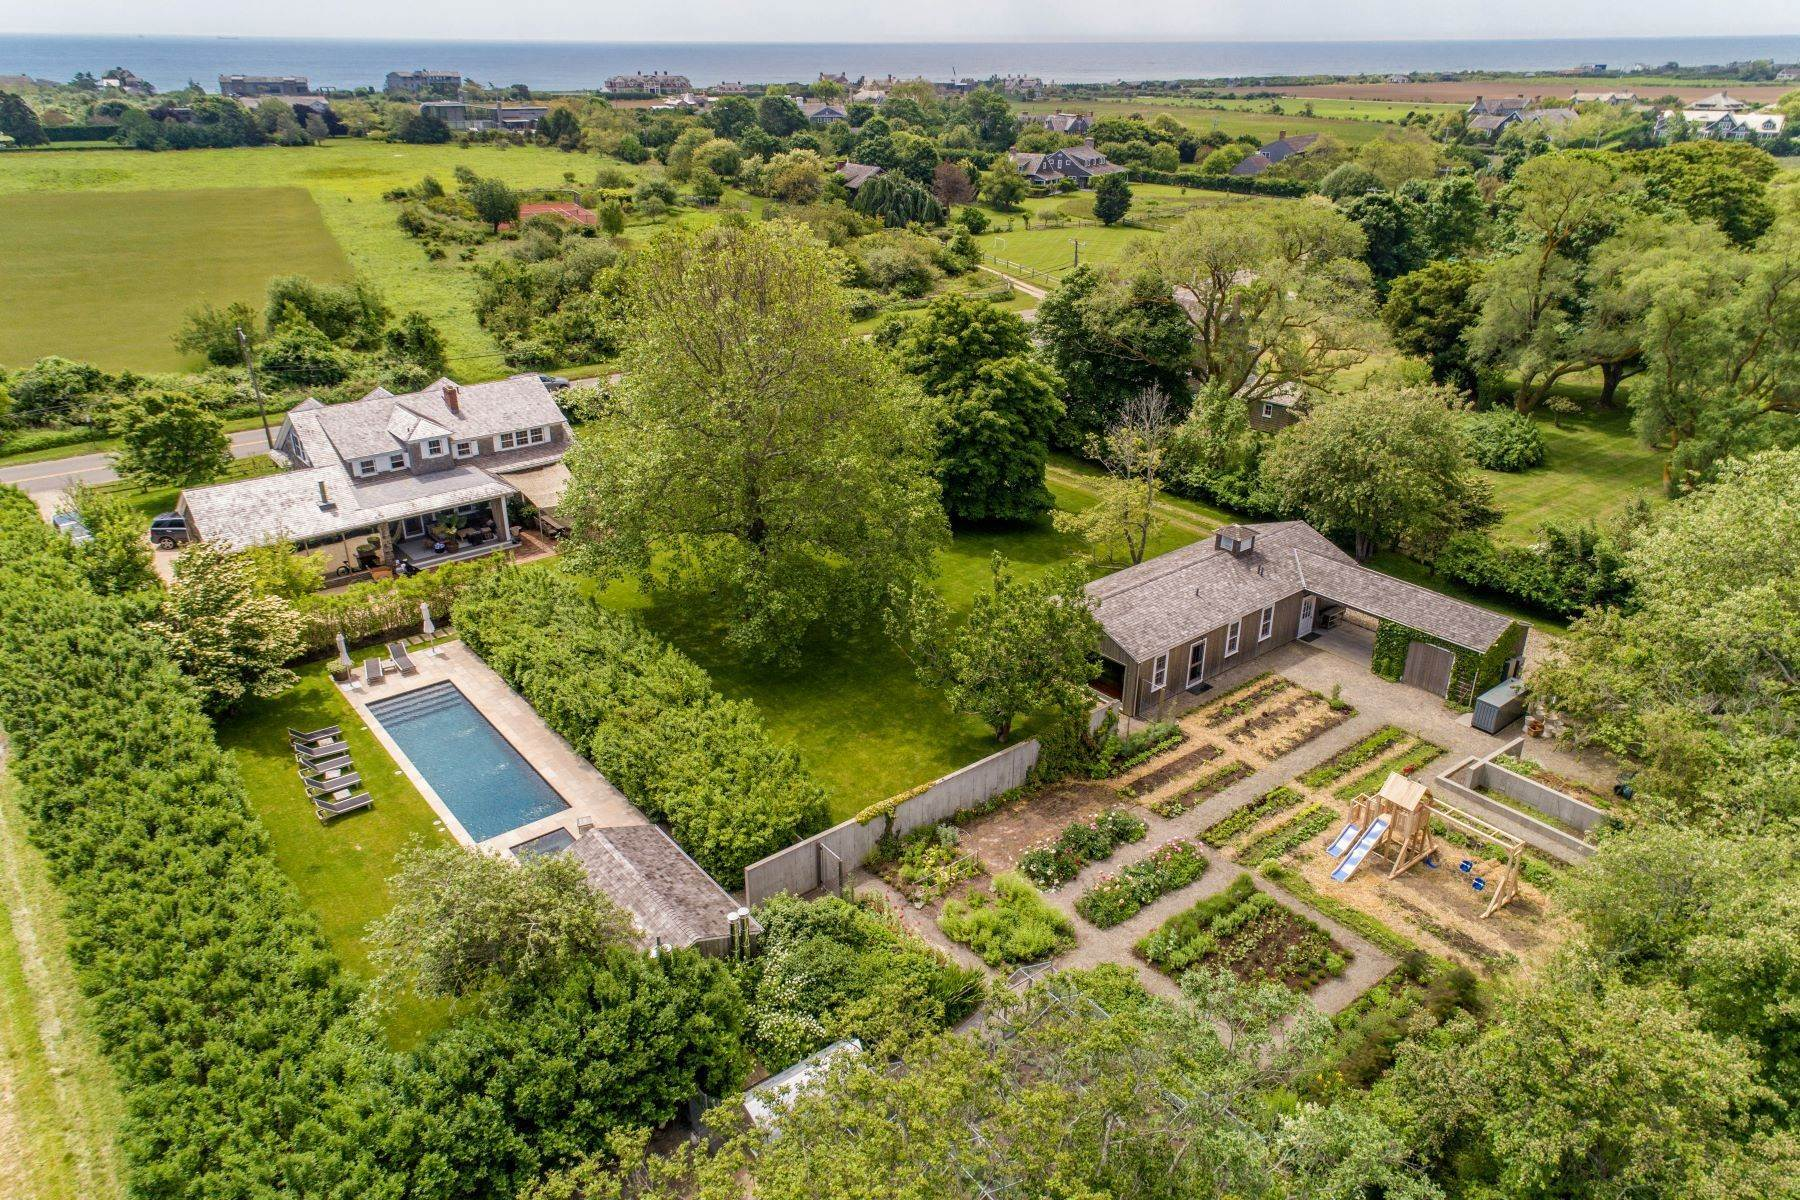 Single Family Homes for Active at Ultimate Farm Chic Compound 98 Daniels Lane Sagaponack, New York 11962 United States